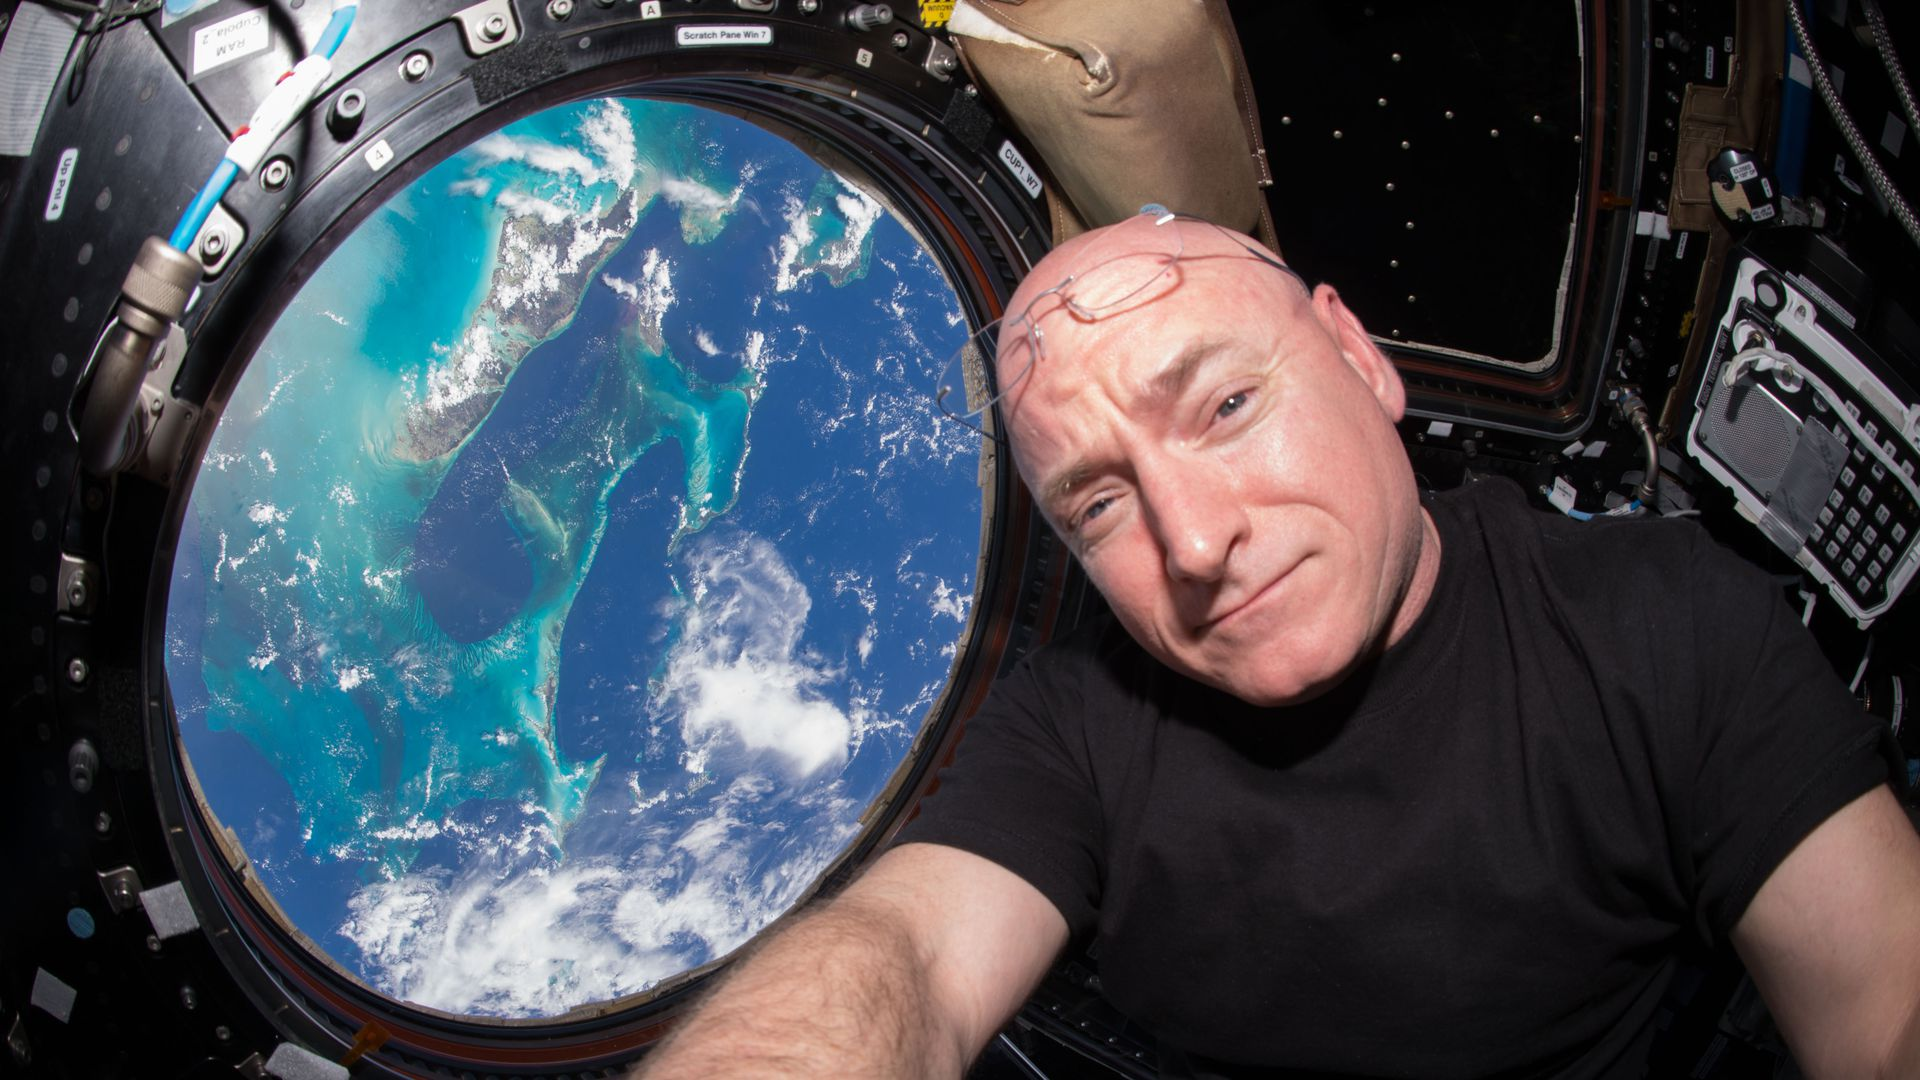 NASA astronaut Scott Kelly is seen inside the International Space Station on July 12, 2015.